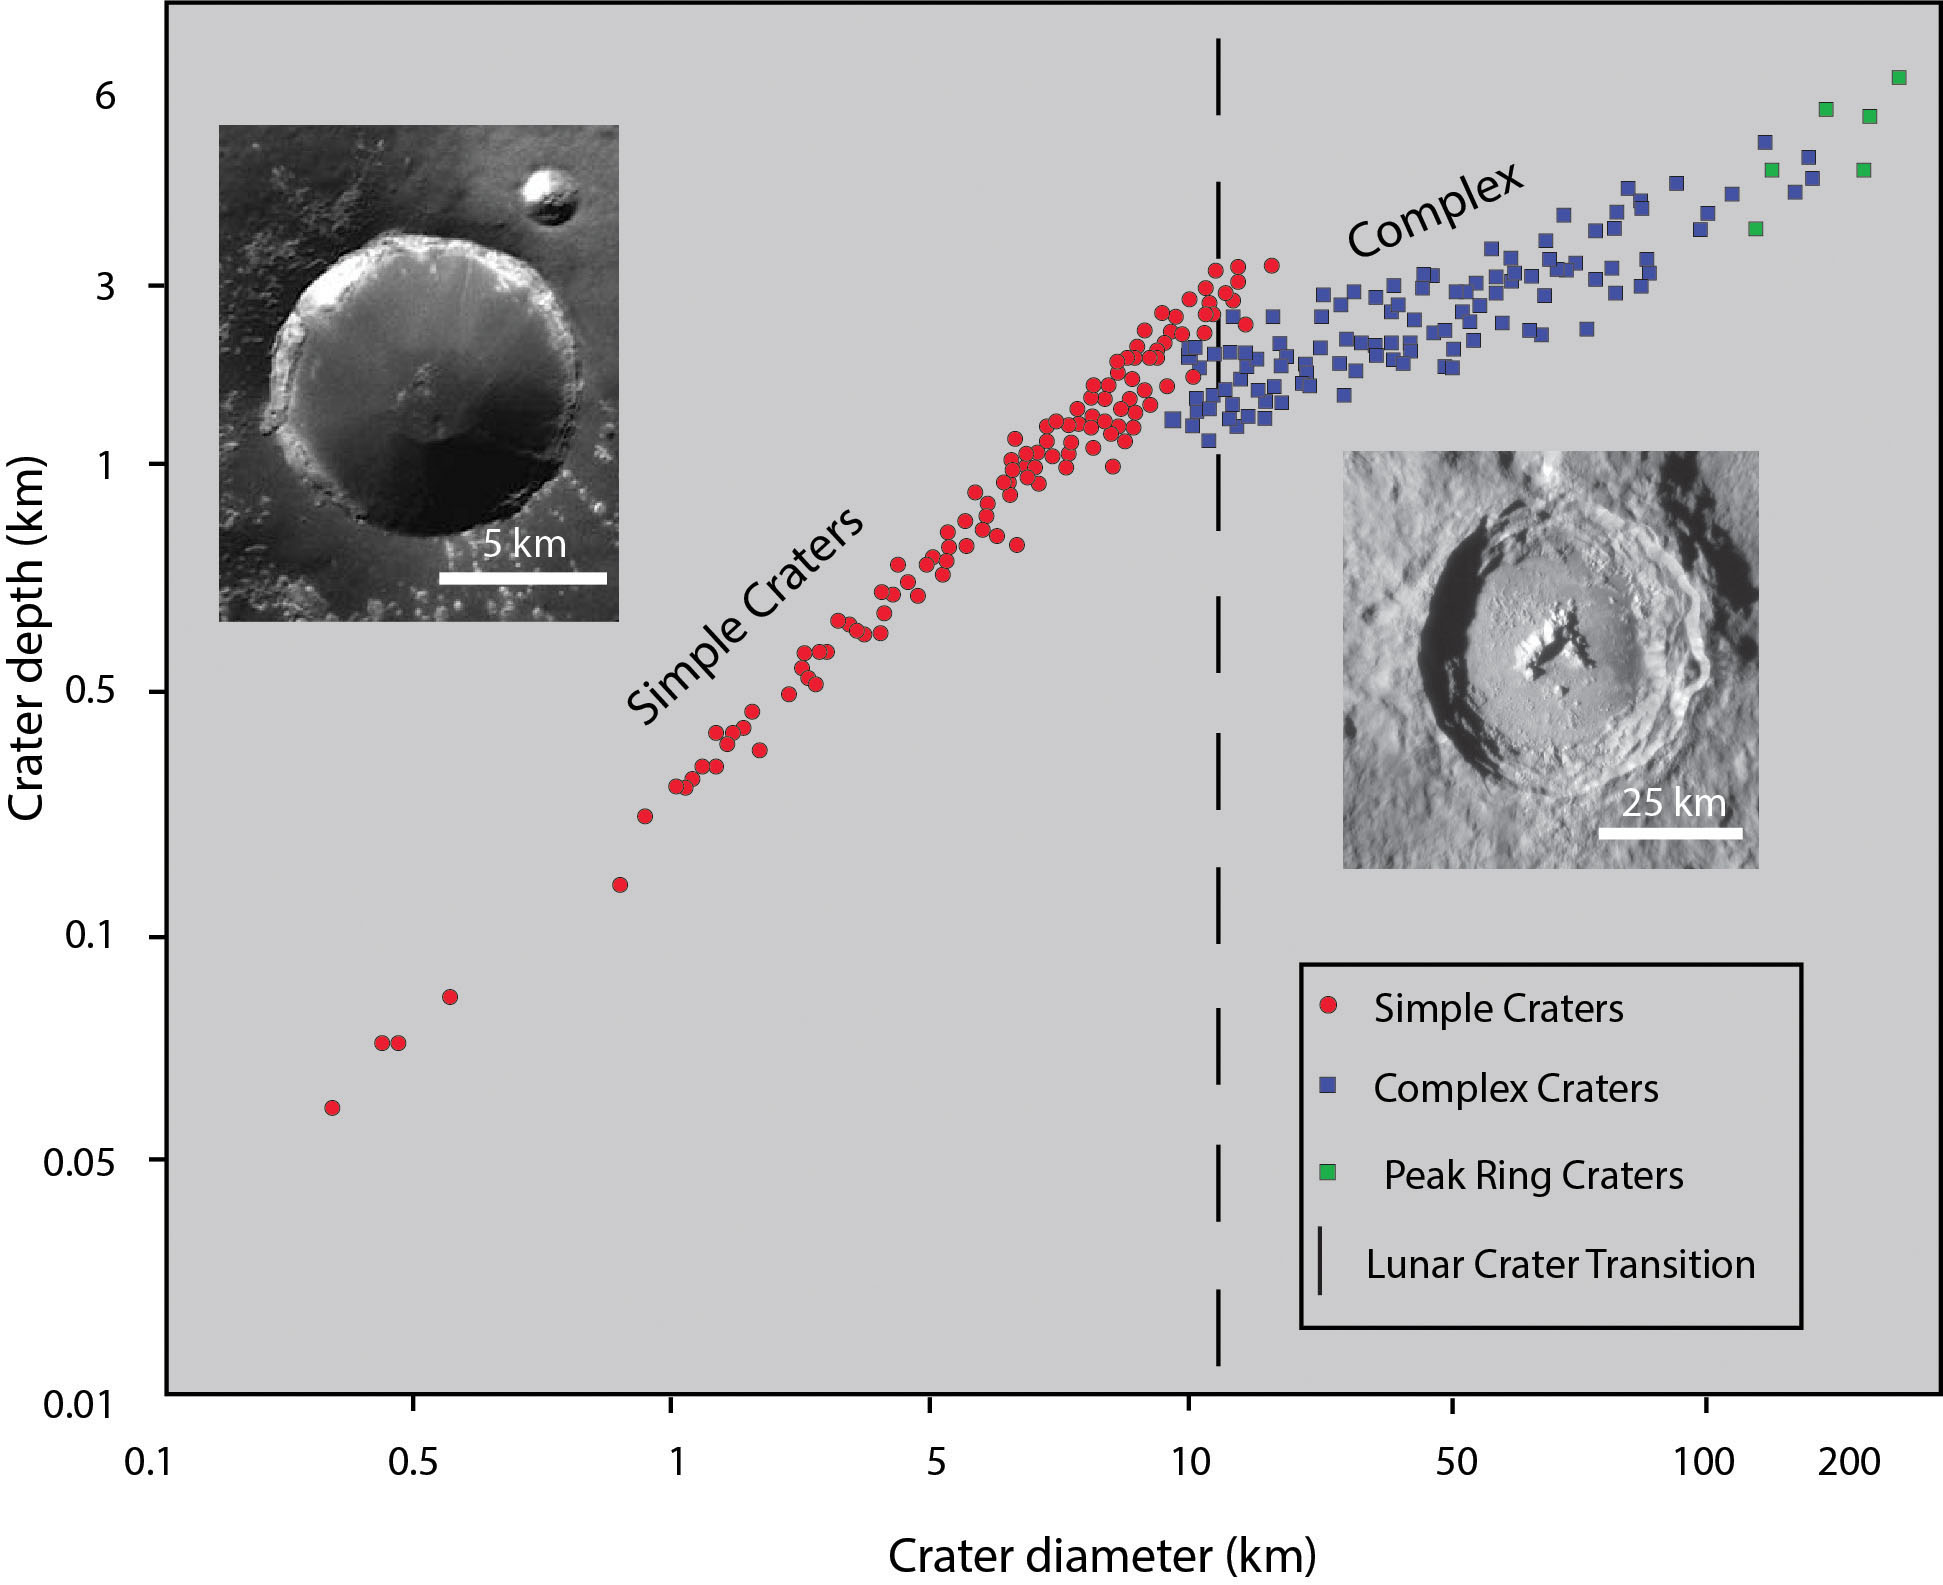 hight resolution of figure 5 11 the morphology of impact craters changes systematically with increasing diameter from simple bowl shaped craters at small diameters to complex